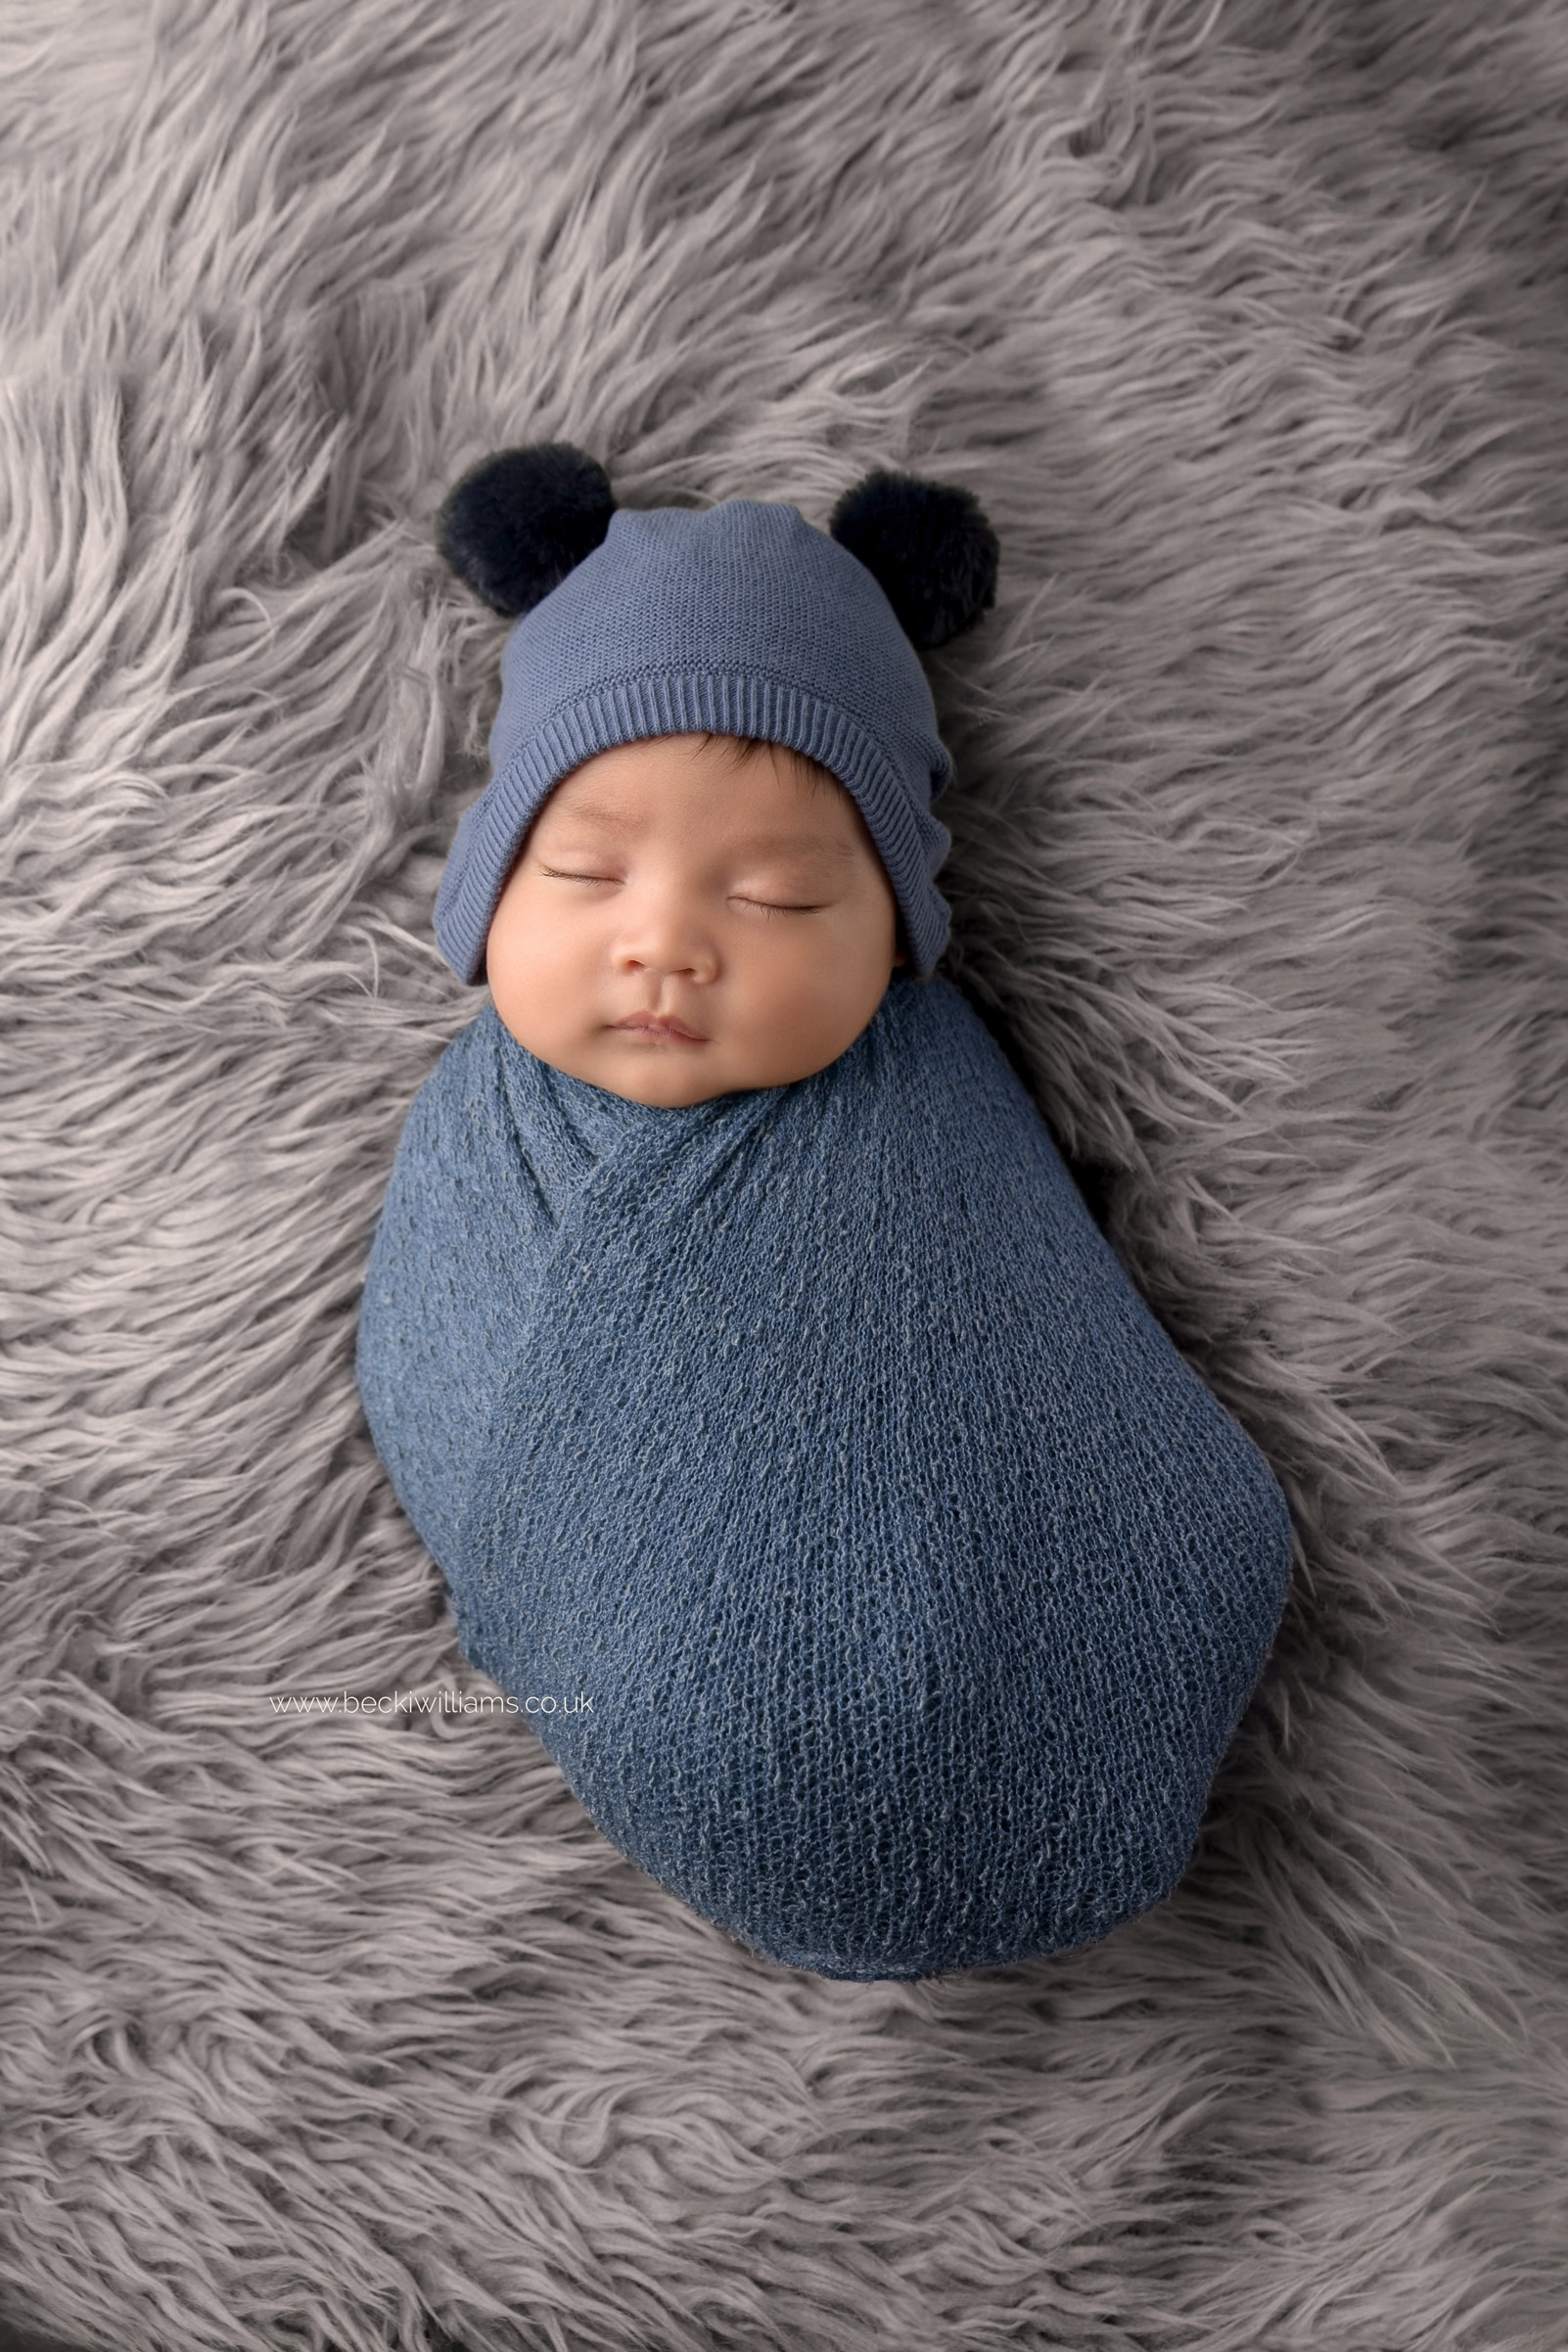 newborn-photography-in-hertfordshire-watford-cute-wrapped-blue-hat.jpg